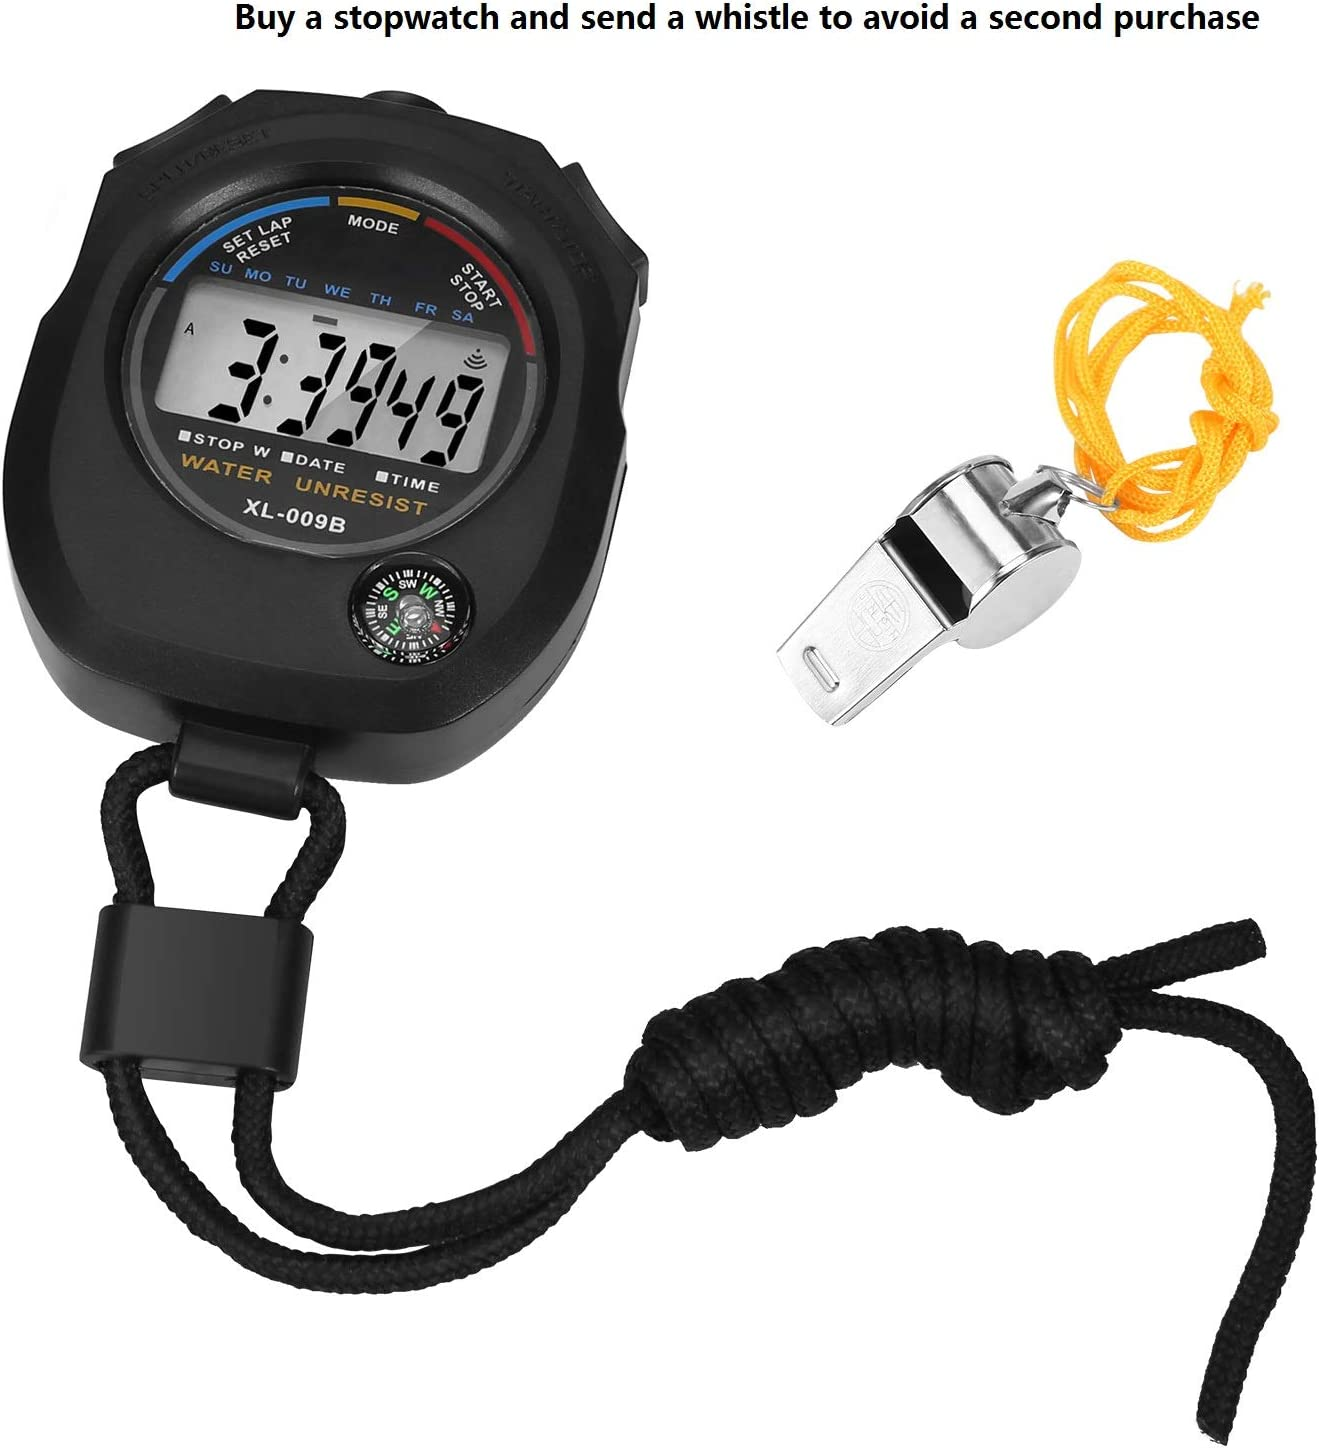 Keyu Sport stopwatches Timer,Digital Stopwatch Big Screen Interval Timer Dedicated to Training /& Sports.Simple Stopwatch Operation+Whistle.5 Pack